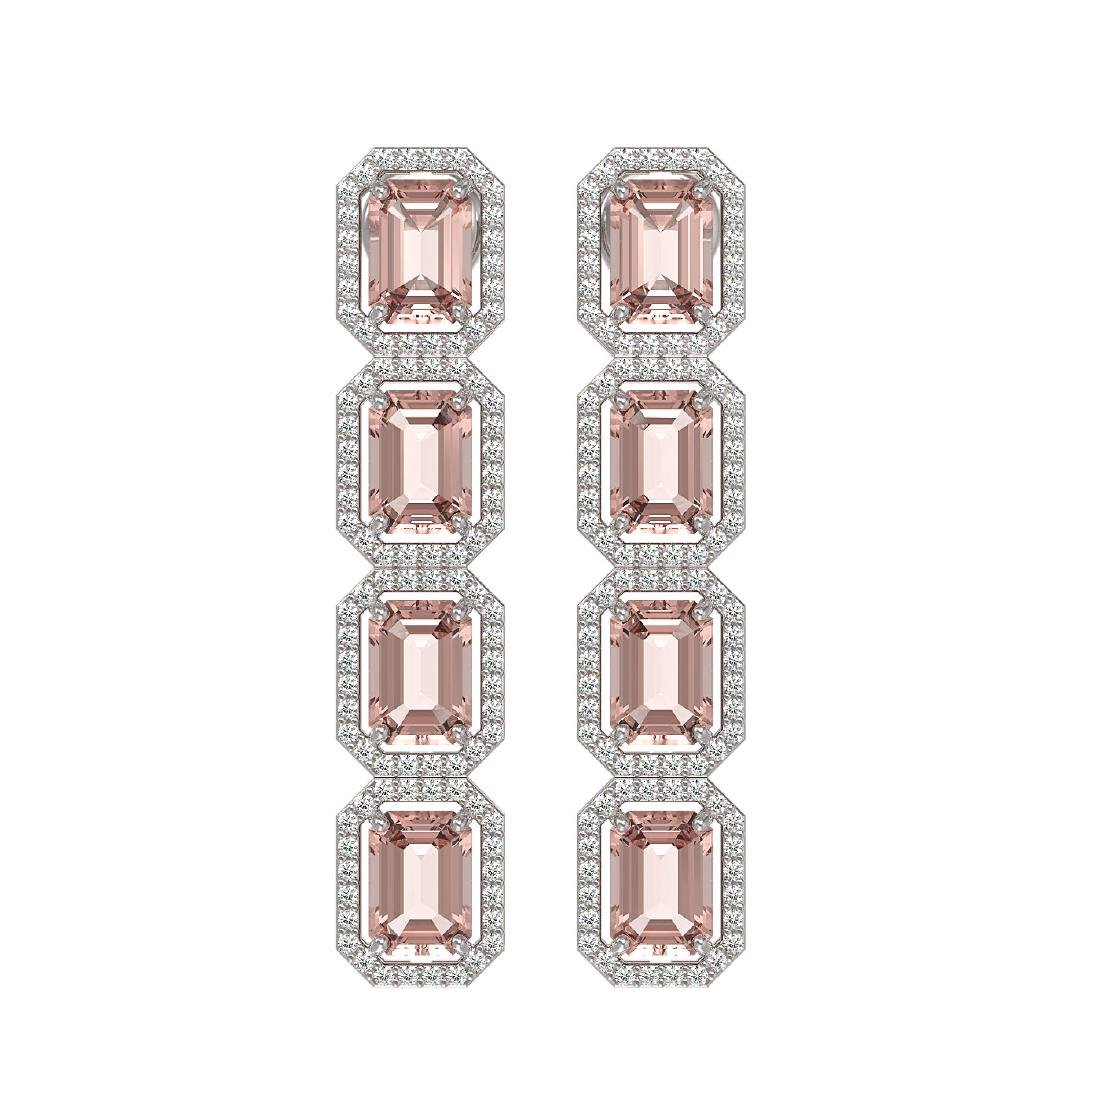 10.73 CTW Morganite & Diamond Halo Earrings 10K White